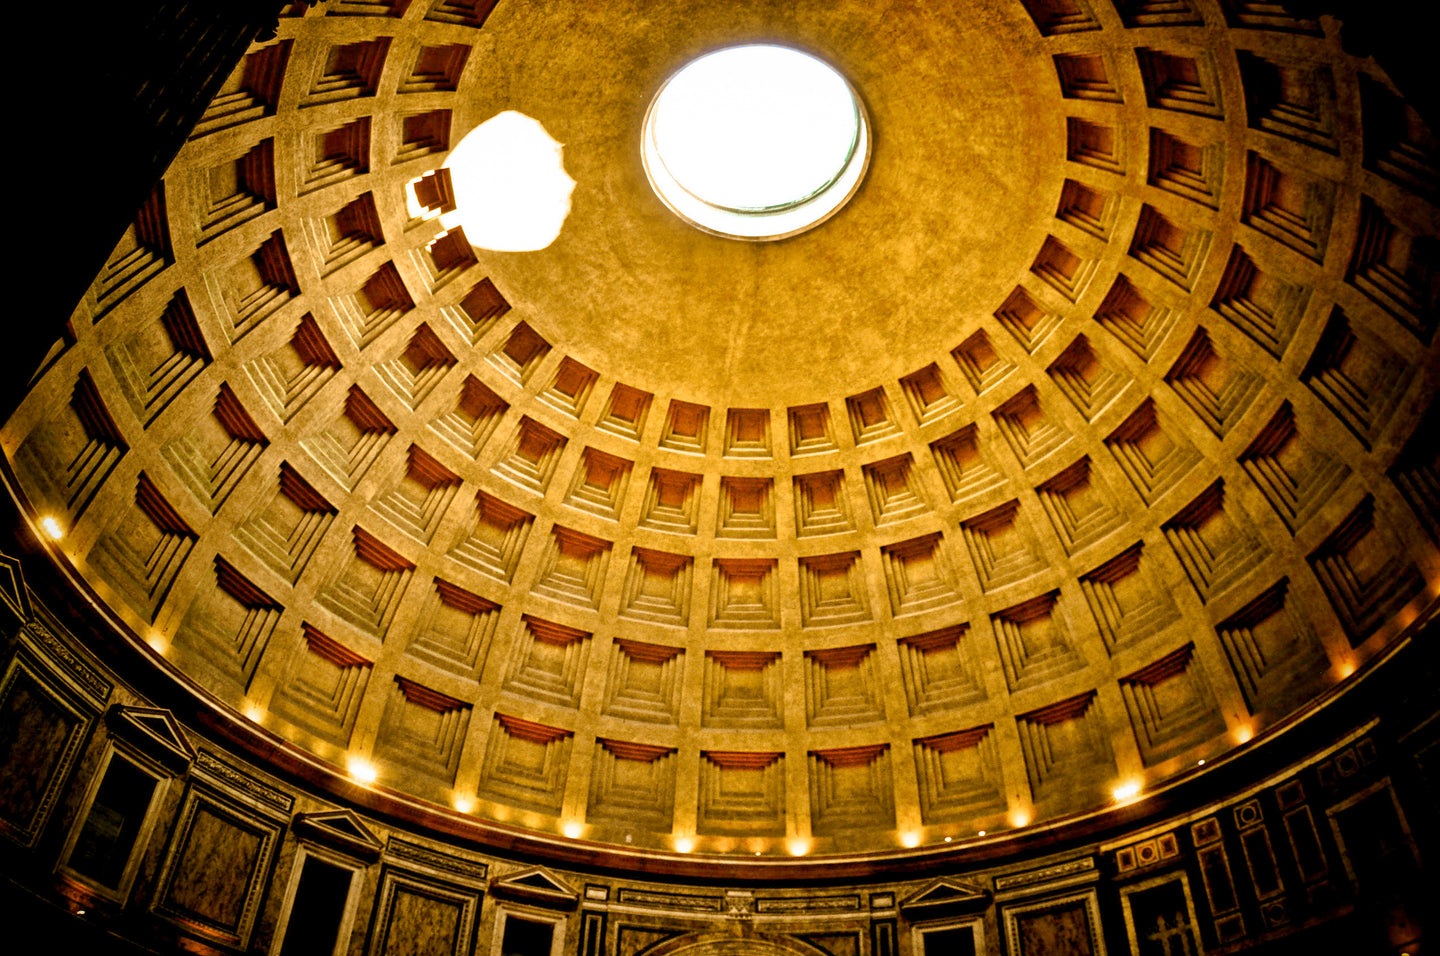 Dome of the Pantheon, Rome - Tracy McCrackin Photography